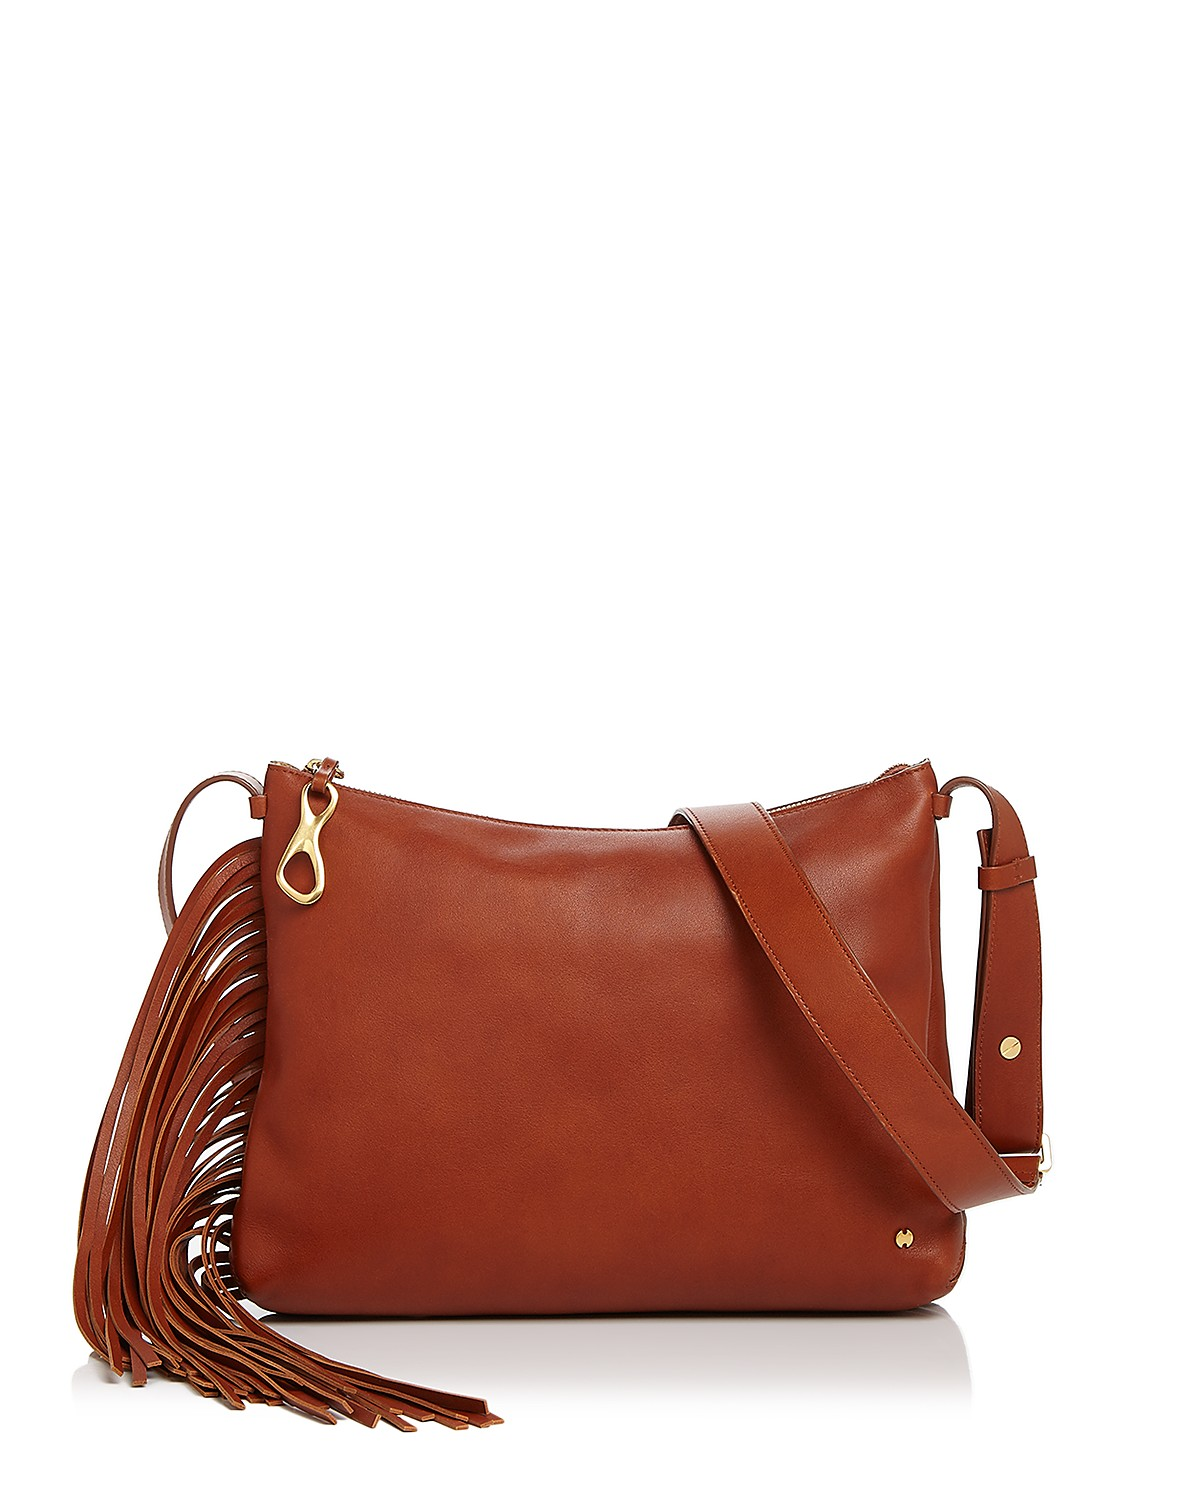 Halston Heritage Tina Fringe Leather Crossbody Real Sale Online Real Cheapest Price For Sale Sale Outlet Locations 2018 New Online G7owml3aUZ